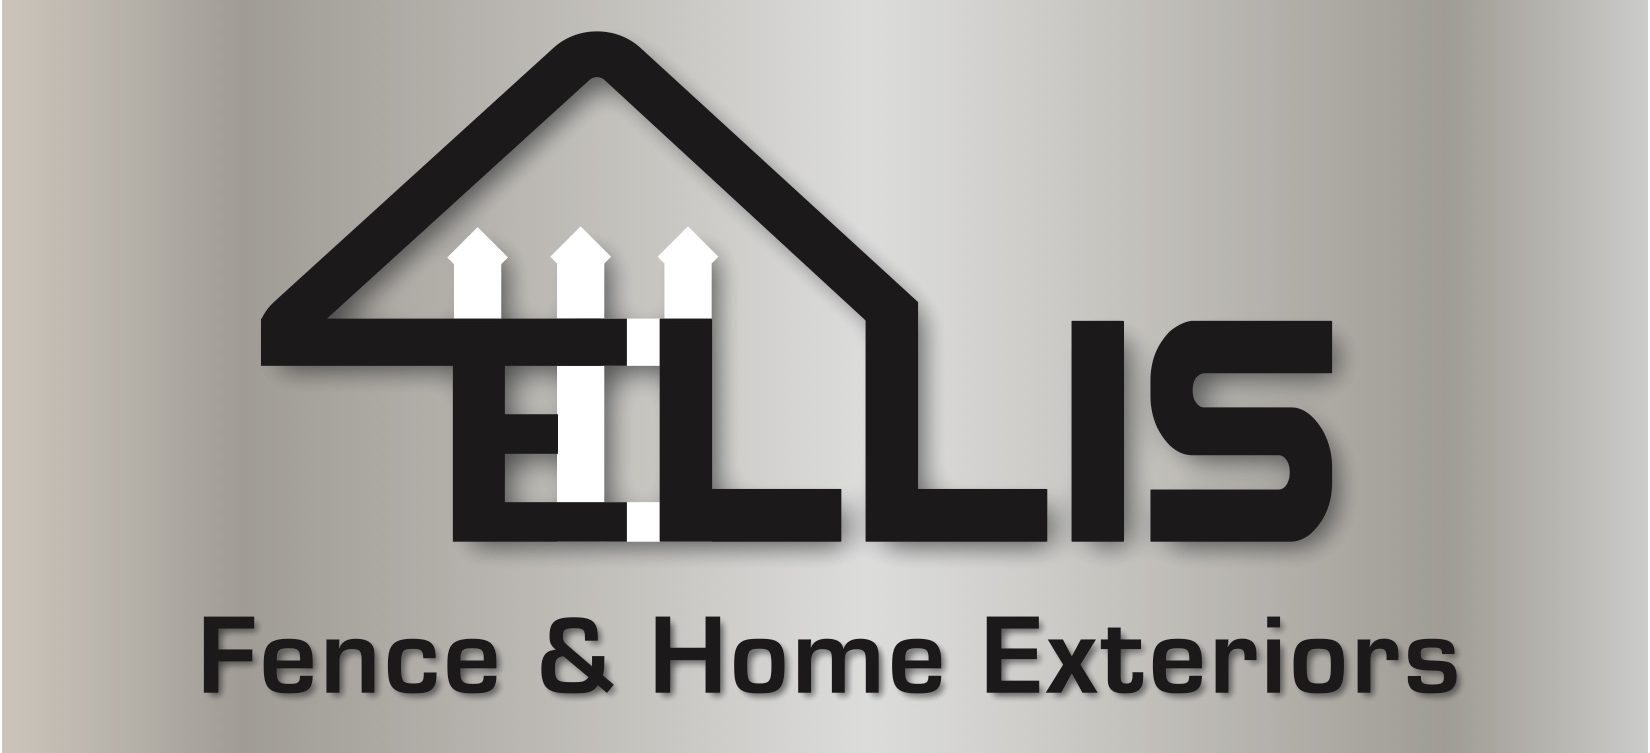 Ellis Fence & Home Exteriors